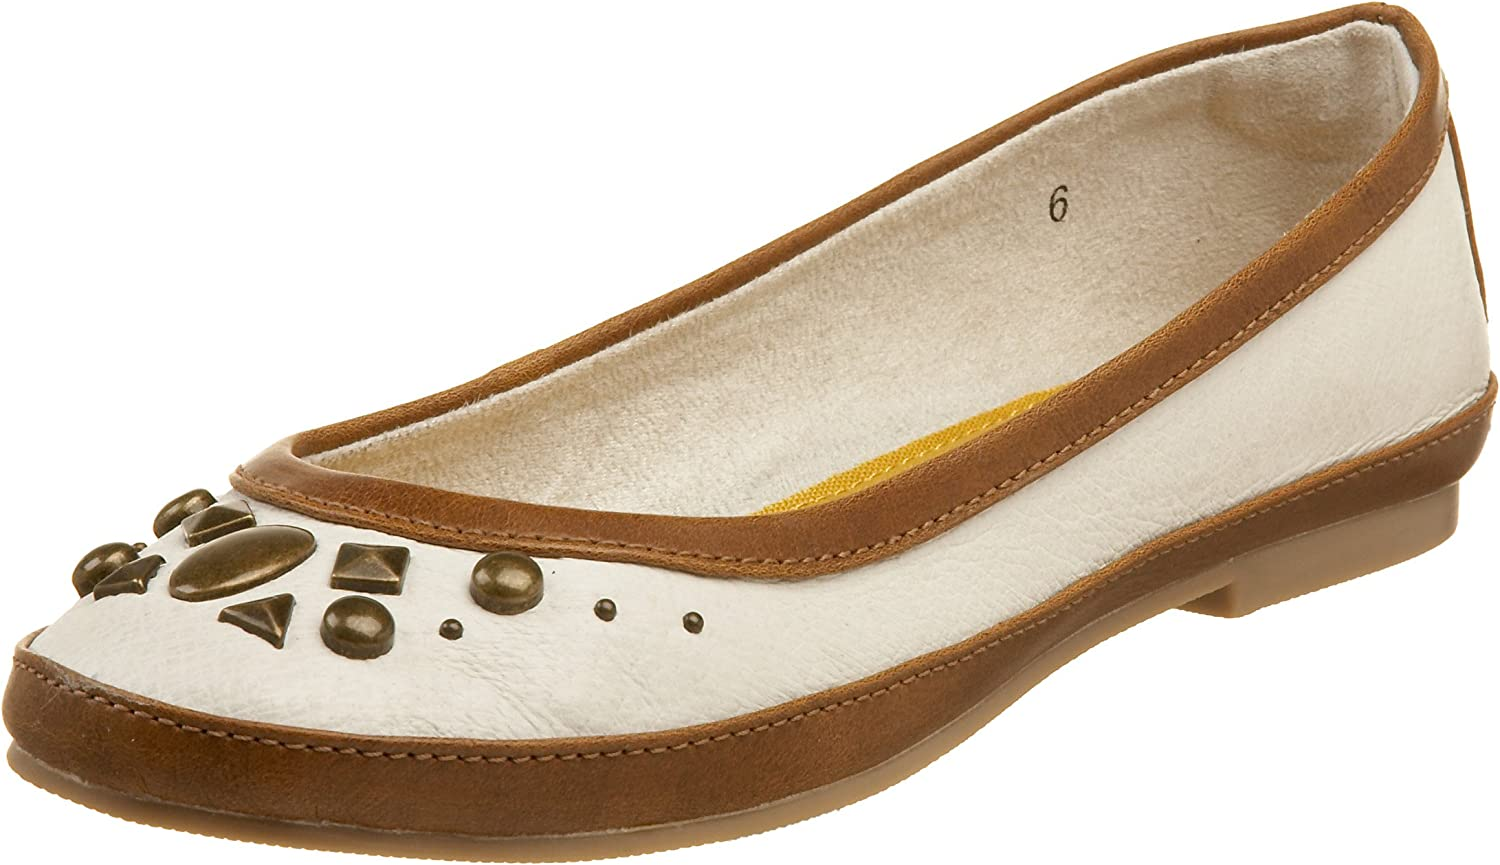 BC Footwear Women's Do Flat Max 66% OFF Studded Gooder OFFicial store